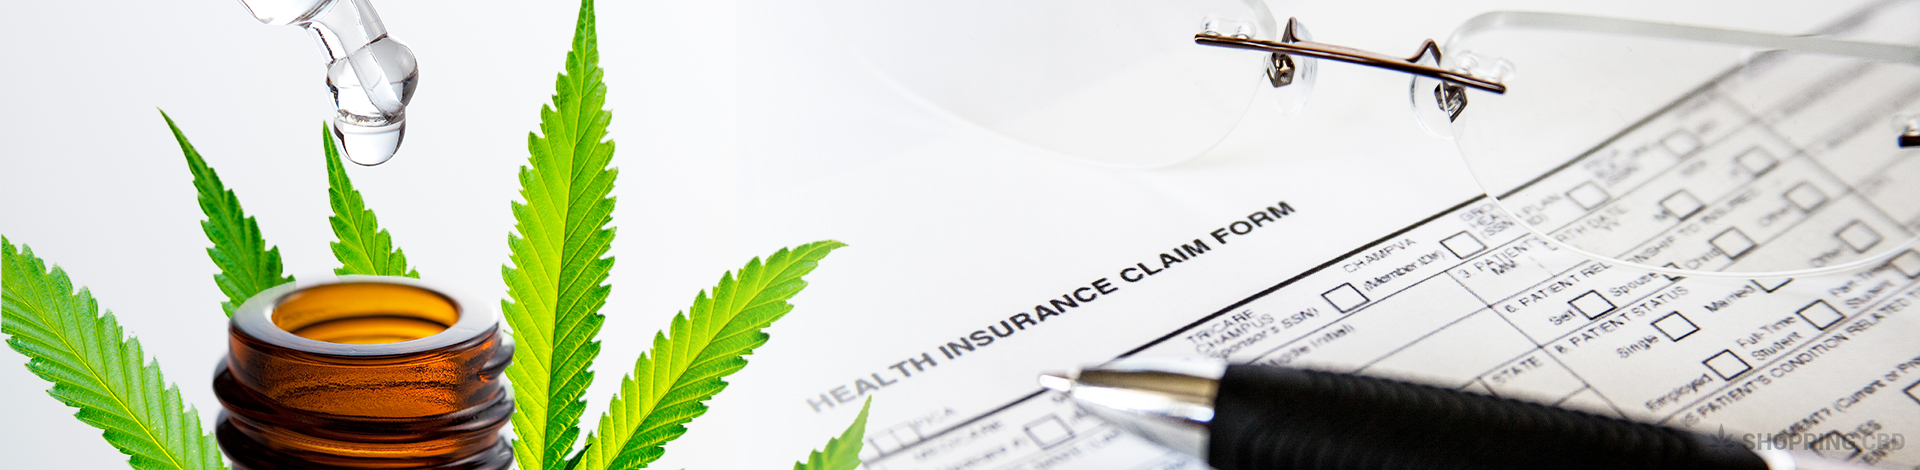 Will My Insurance Pay for CBD Oil?